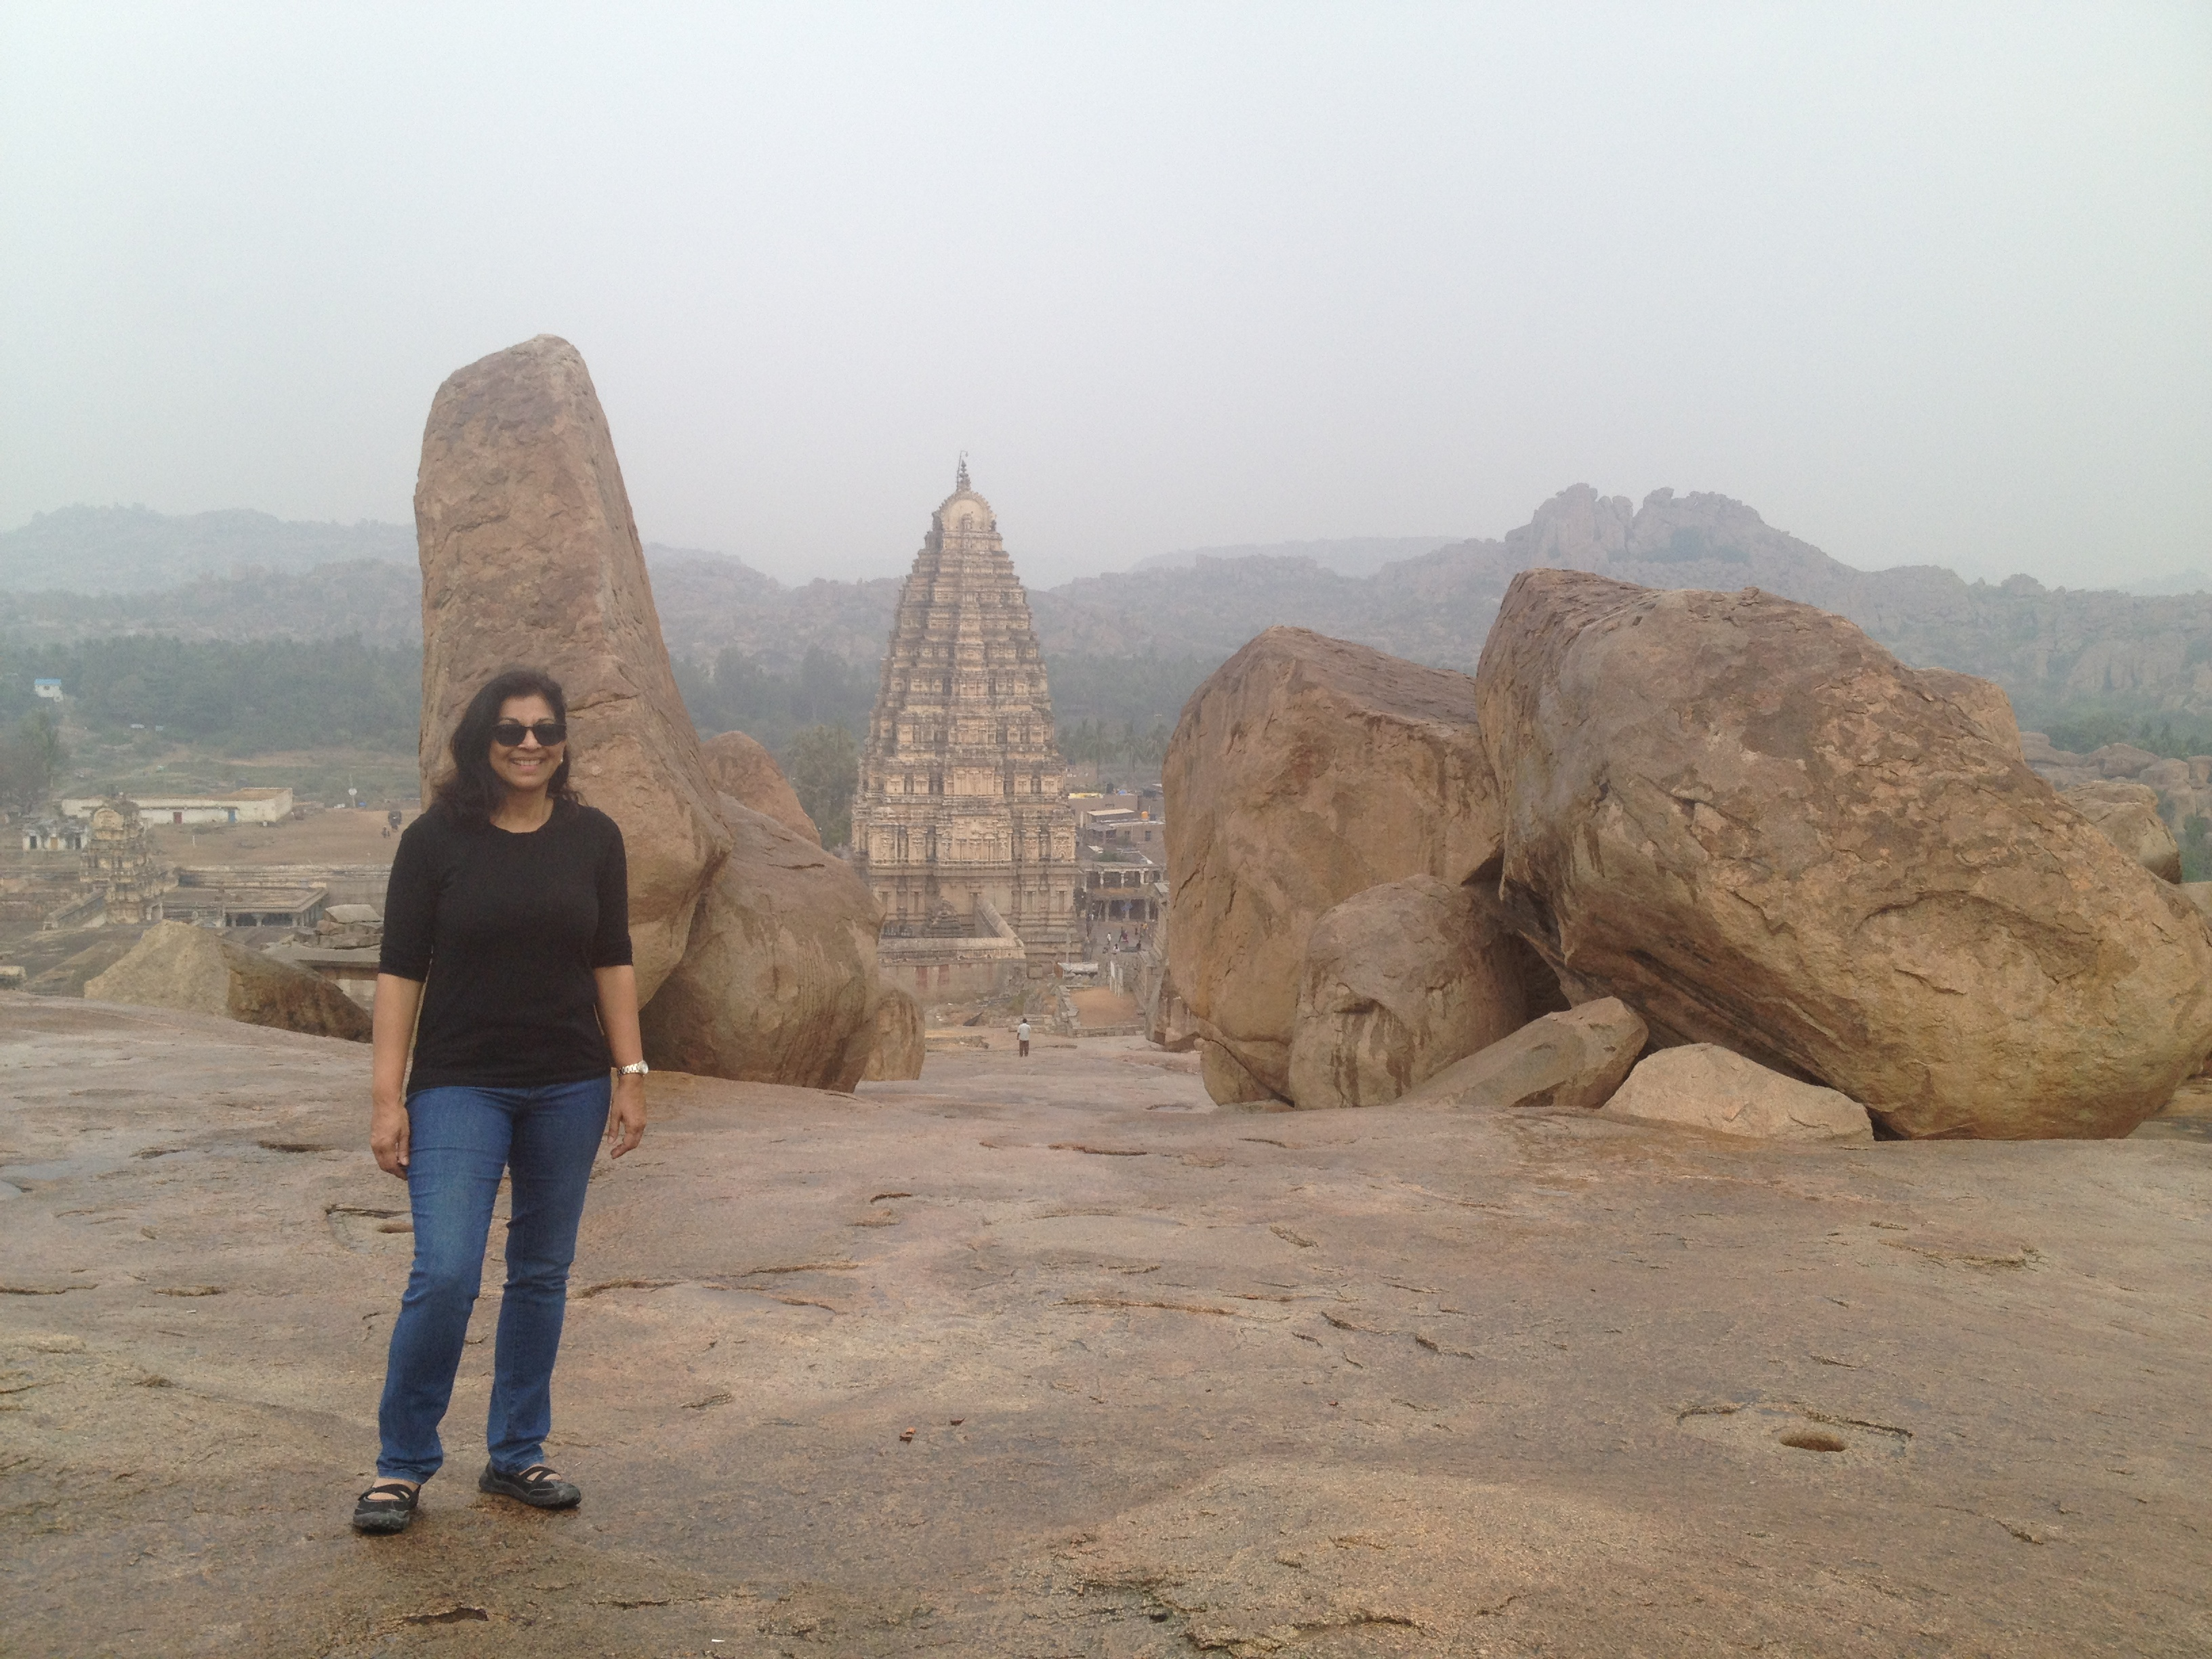 Ruins of the 14th century Hampi